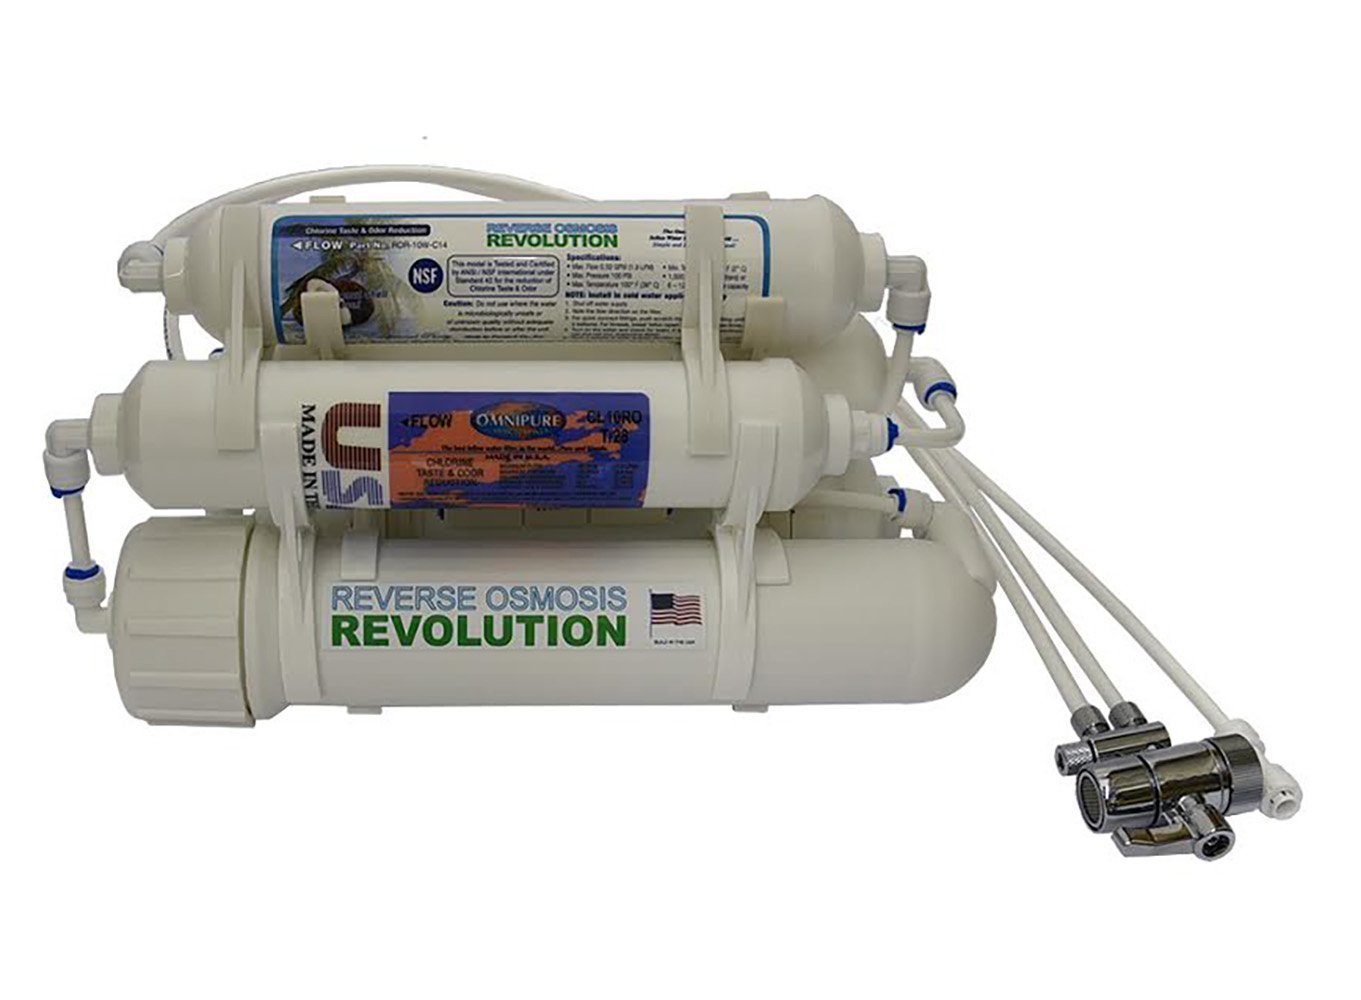 5-stage Reverse Osmosis Revolution Countertop Water Purification System for Ultrapure filtration with DI 0PPM, 75/100/150 GPD membrane